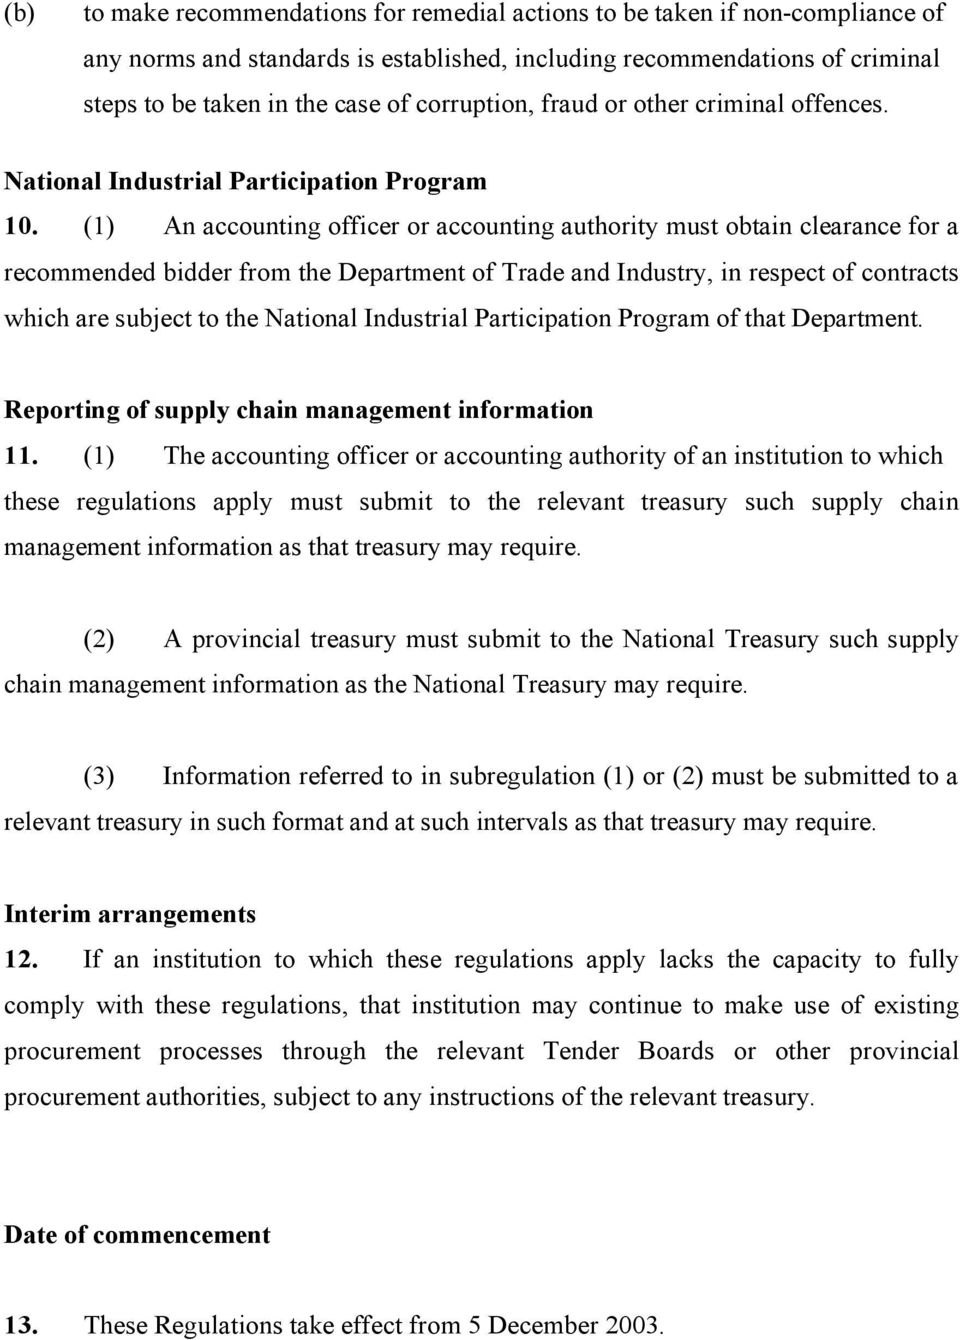 (1) An accounting officer or accounting authority must obtain clearance for a recommended bidder from the Department of Trade and Industry, in respect of contracts which are subject to the National